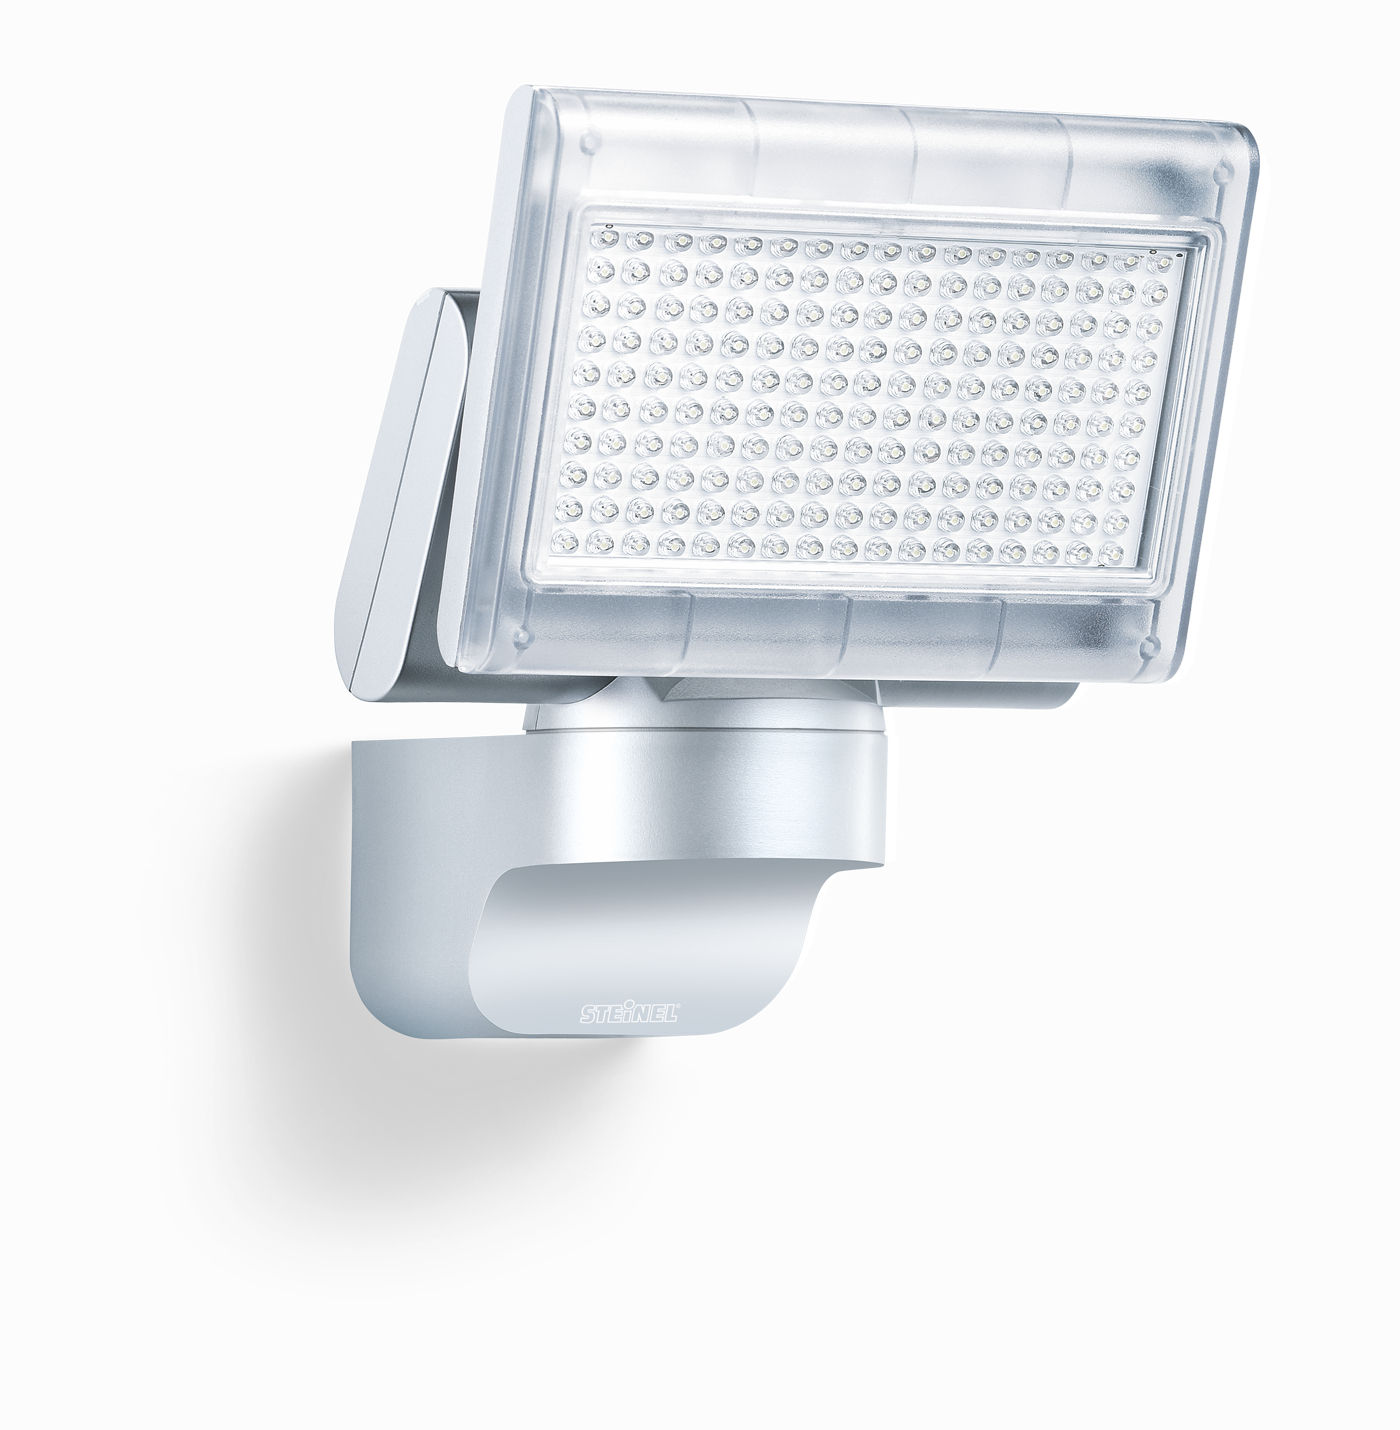 Led Floodlight With Motion Sensor Xled Home1 Sl Steinel Vertrieb